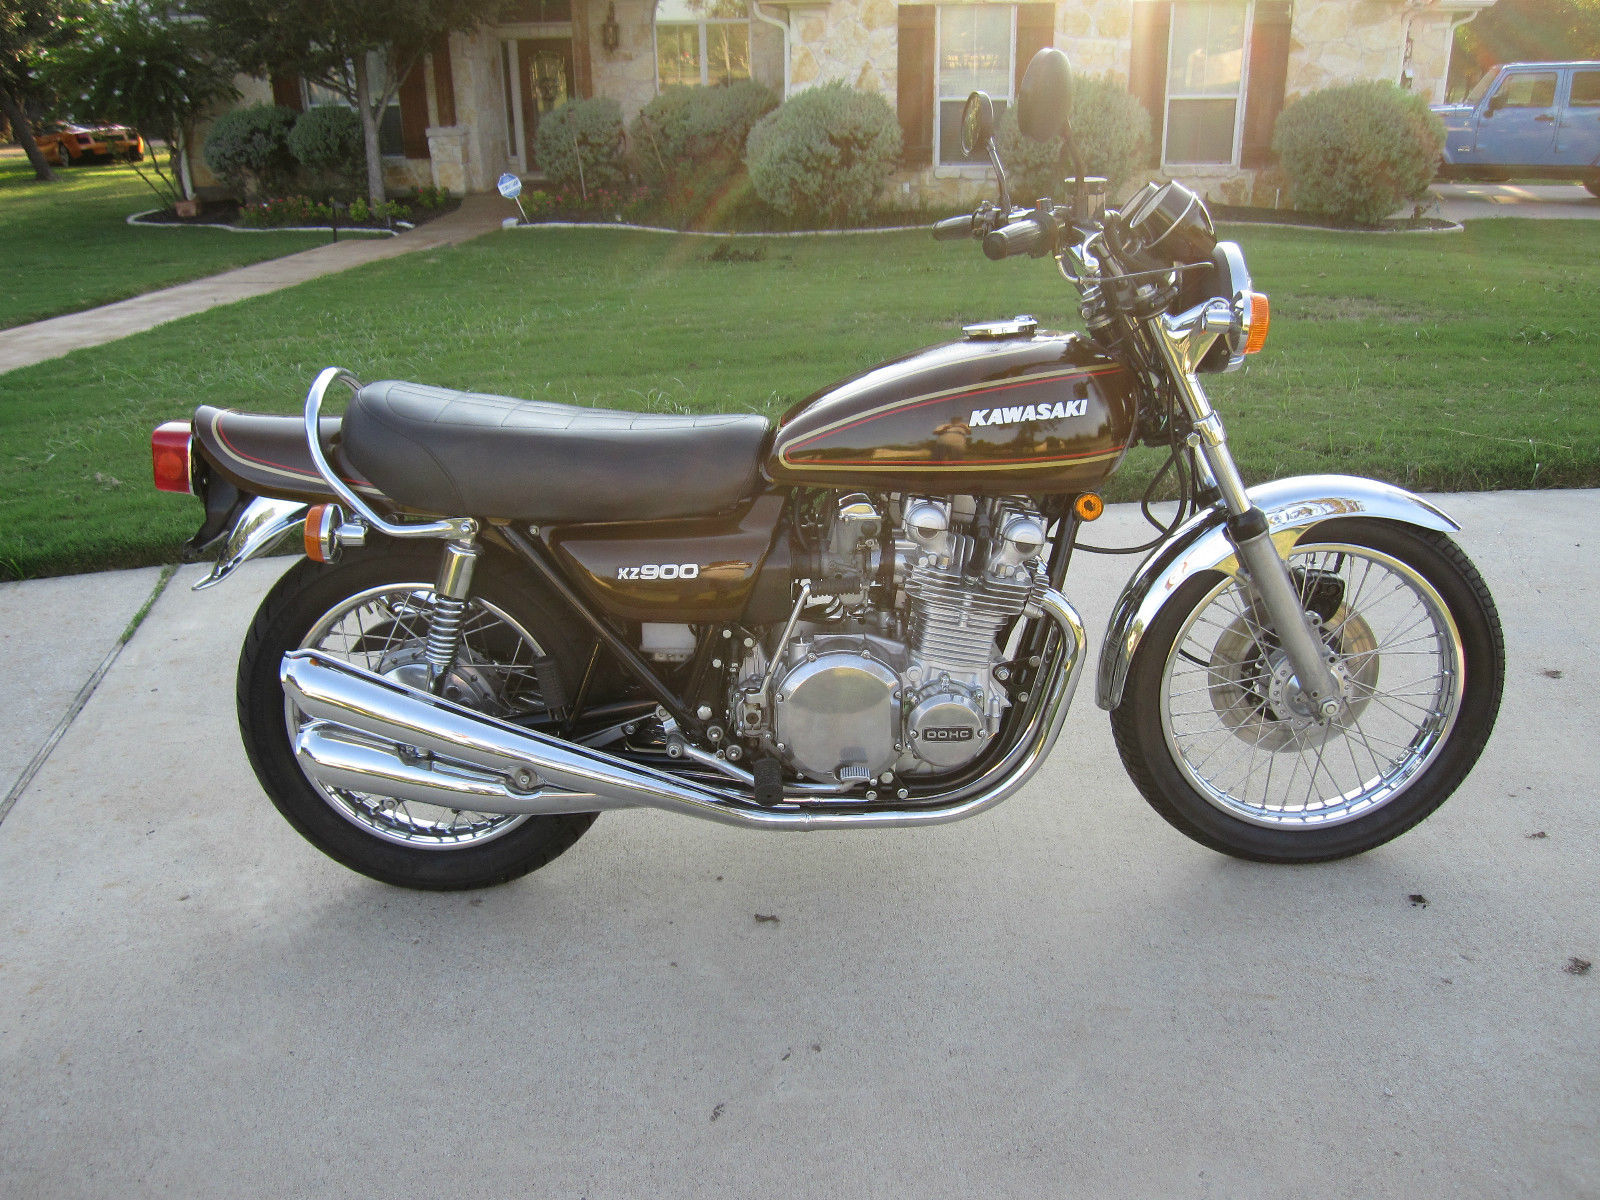 Kawasaki KZ900 - 1976 - Right Side View, Motor ans Transmission, Frame, Seat and Petrol Tank.